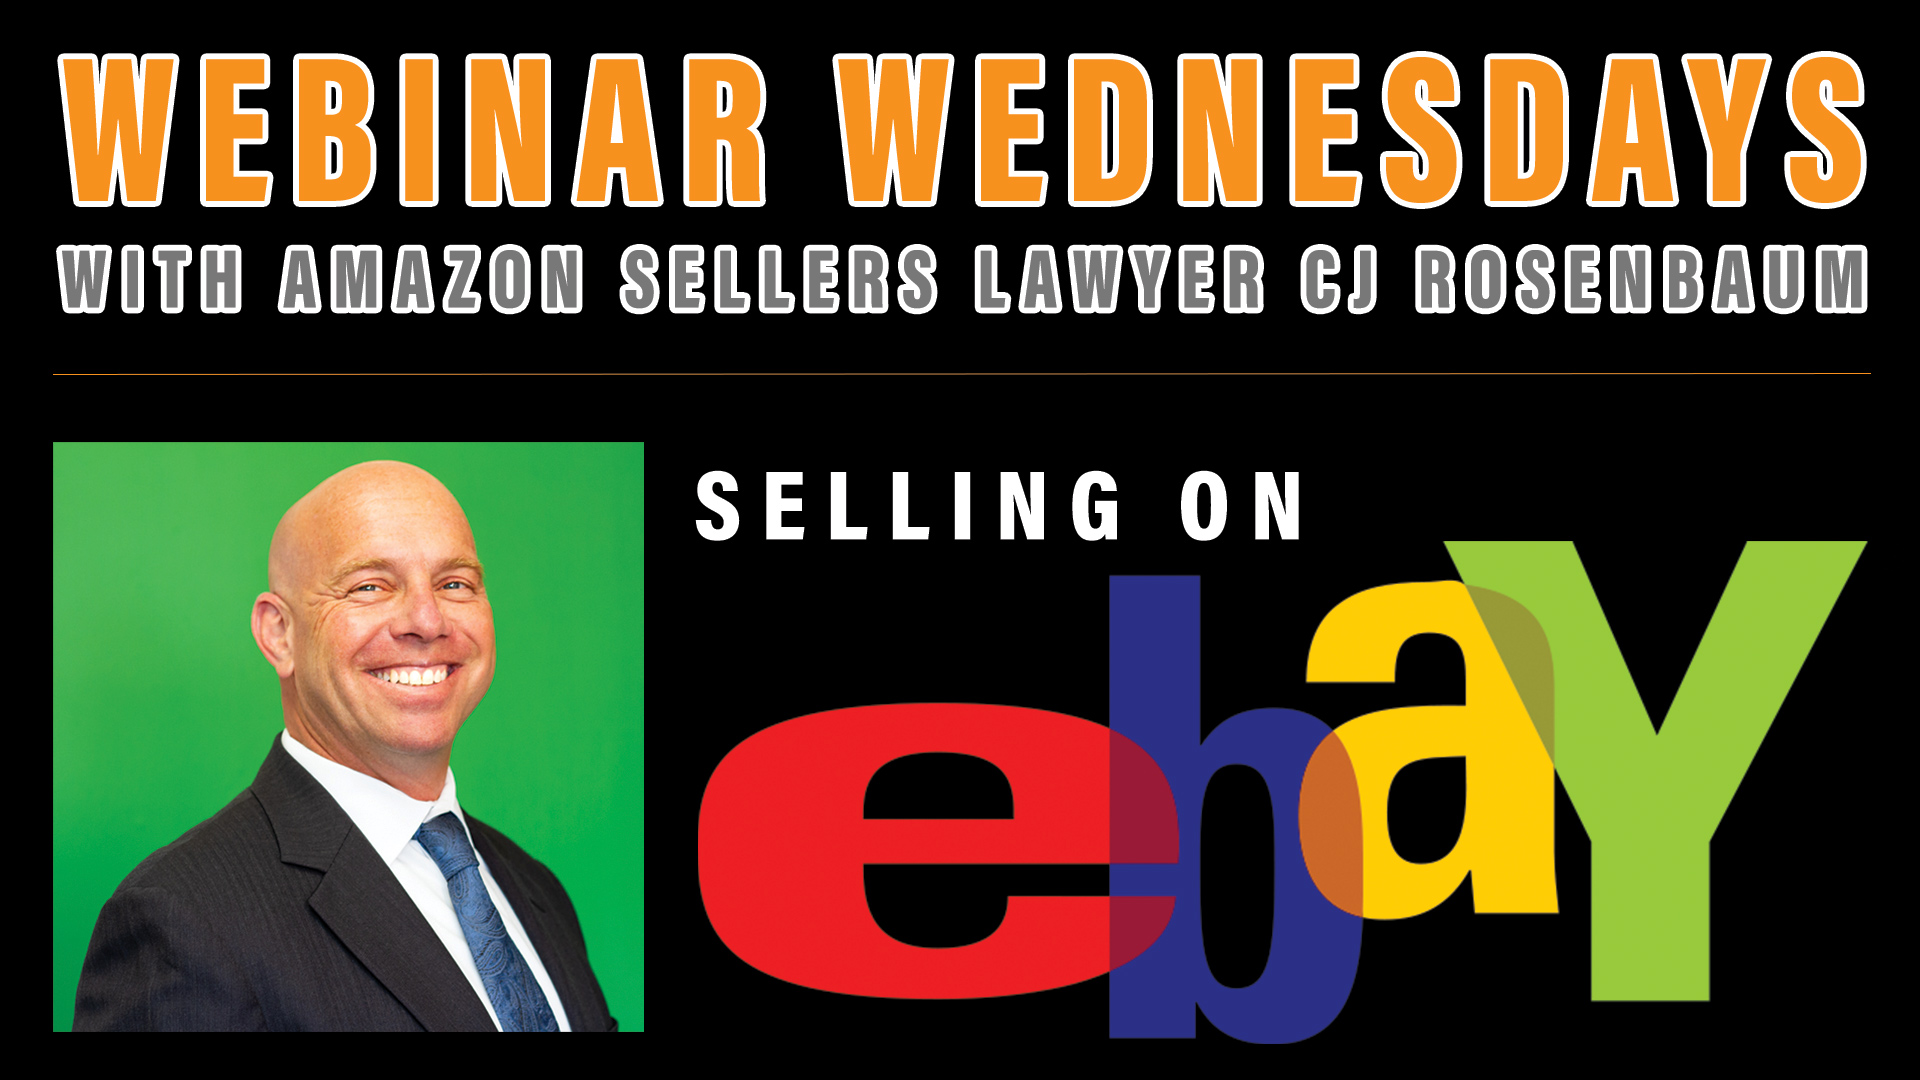 Aaron Schneider, Senior Manager of Business Development at eBay